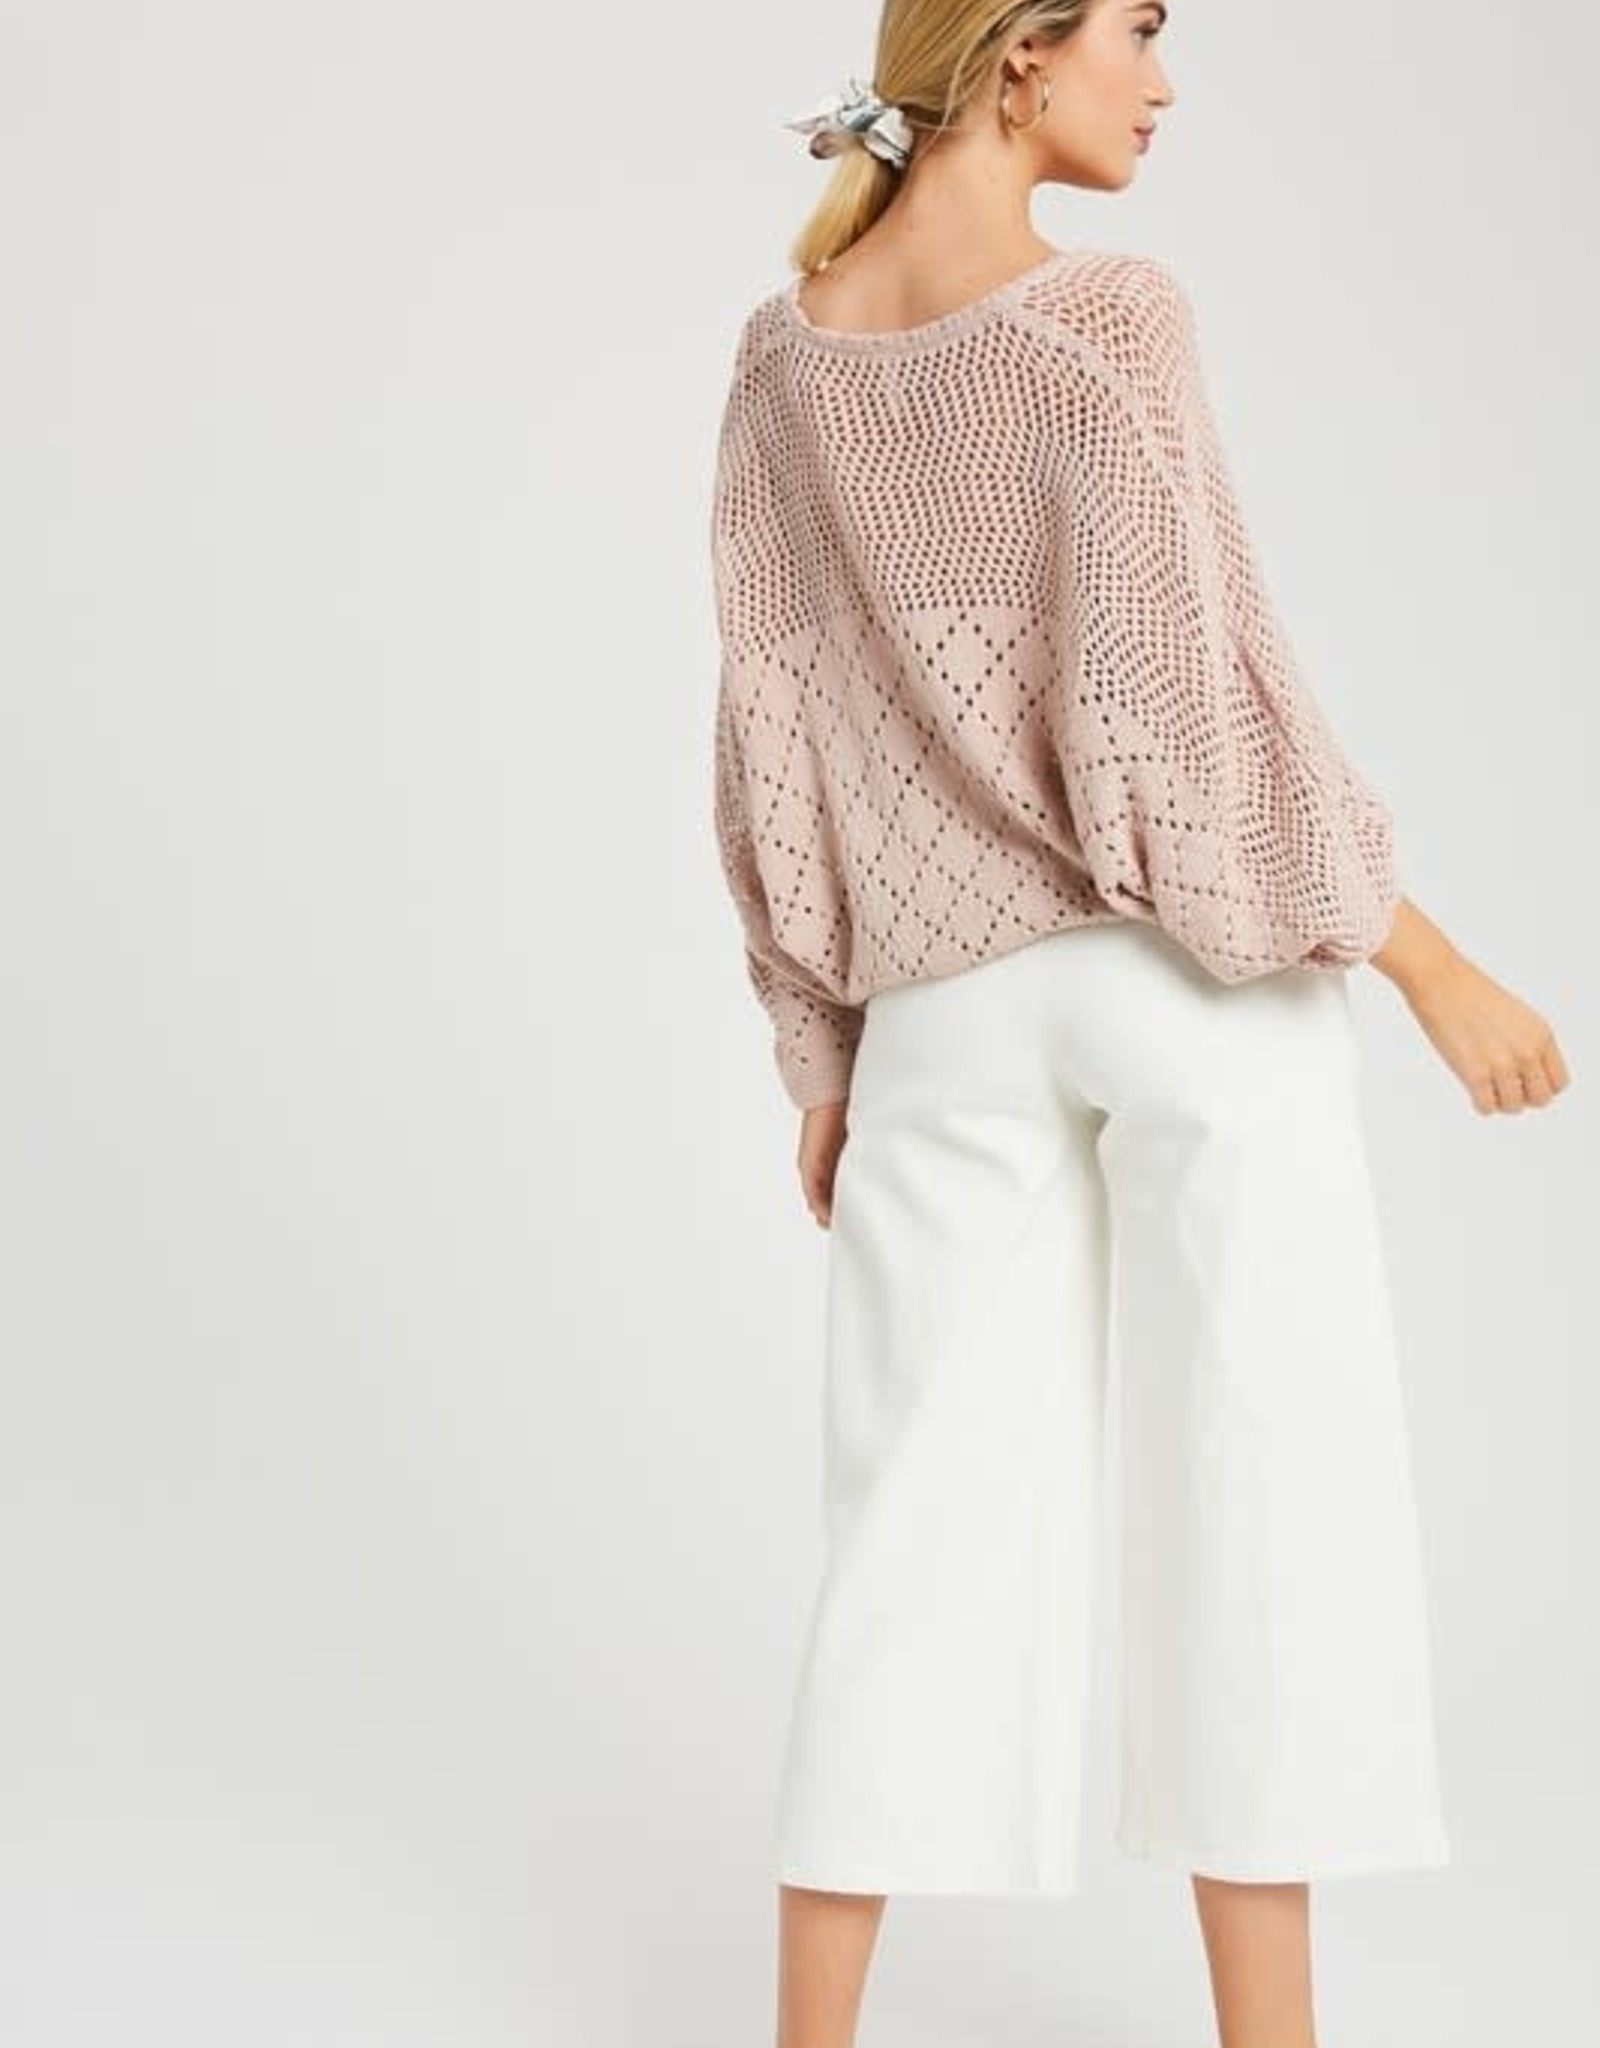 Ladies' Fashions Loose Fit Crochet Sweater